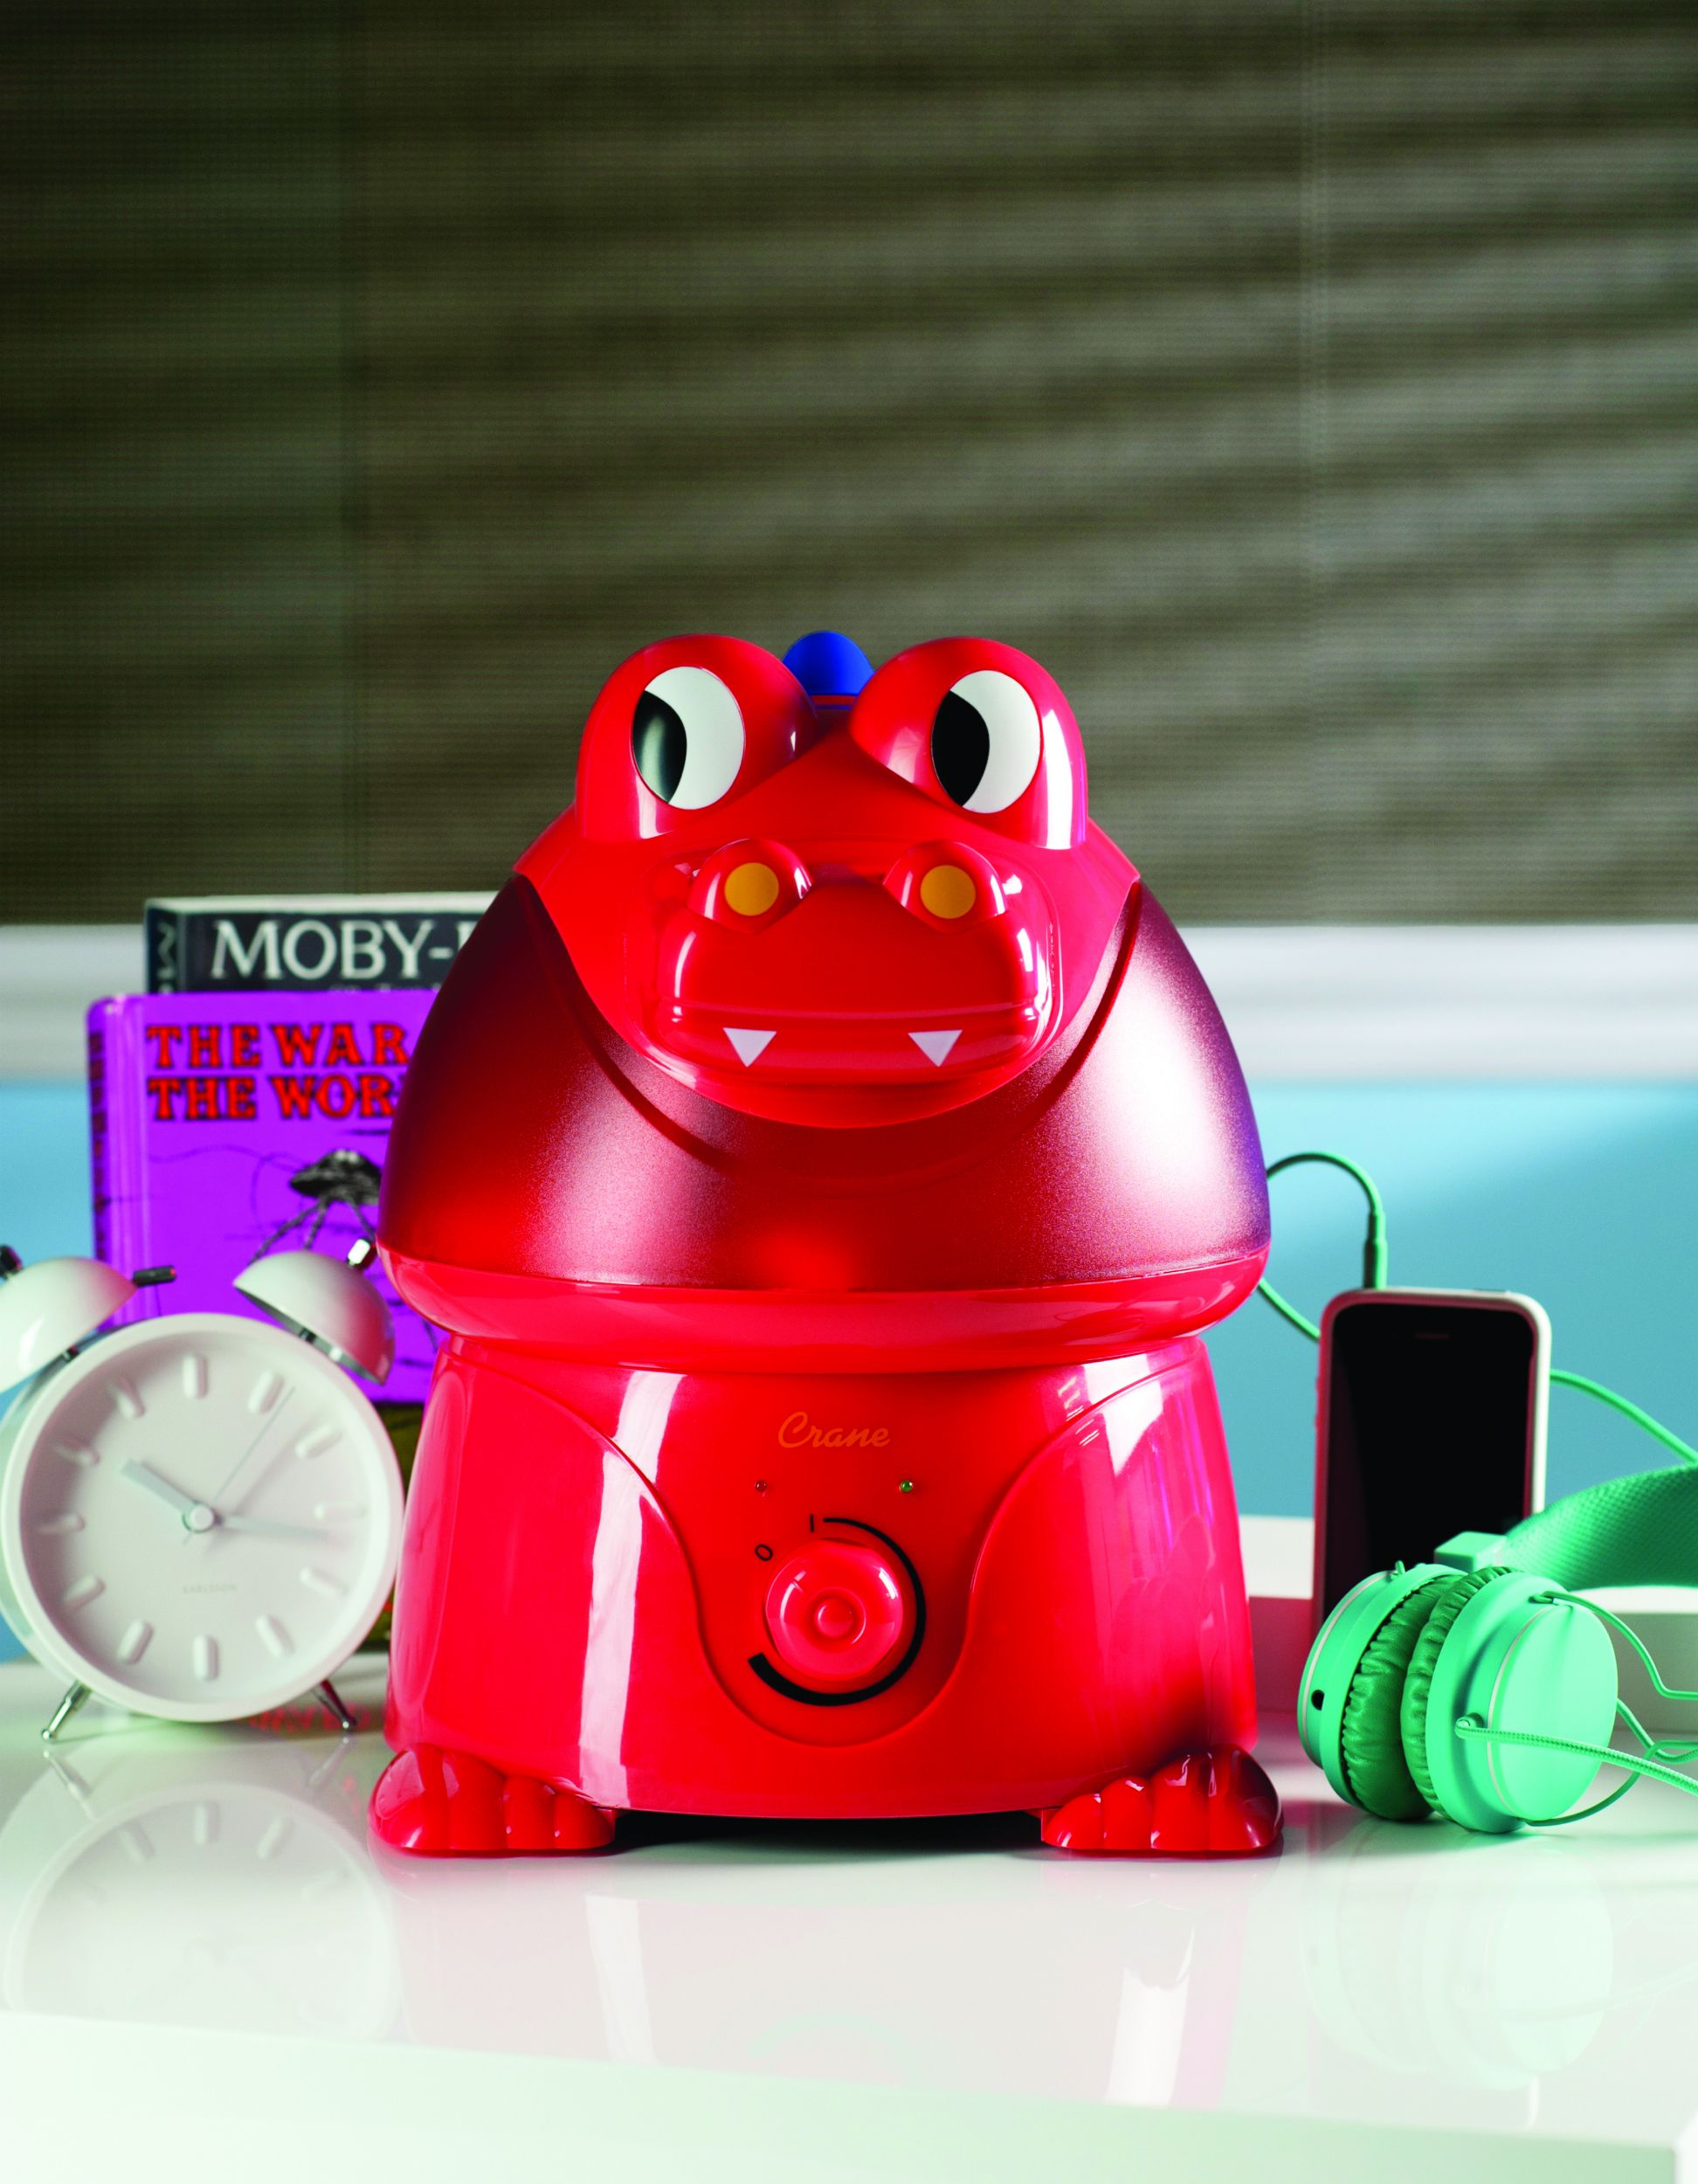 Merlin the Dragon Adorable Cool Mist Humidifier 39.99